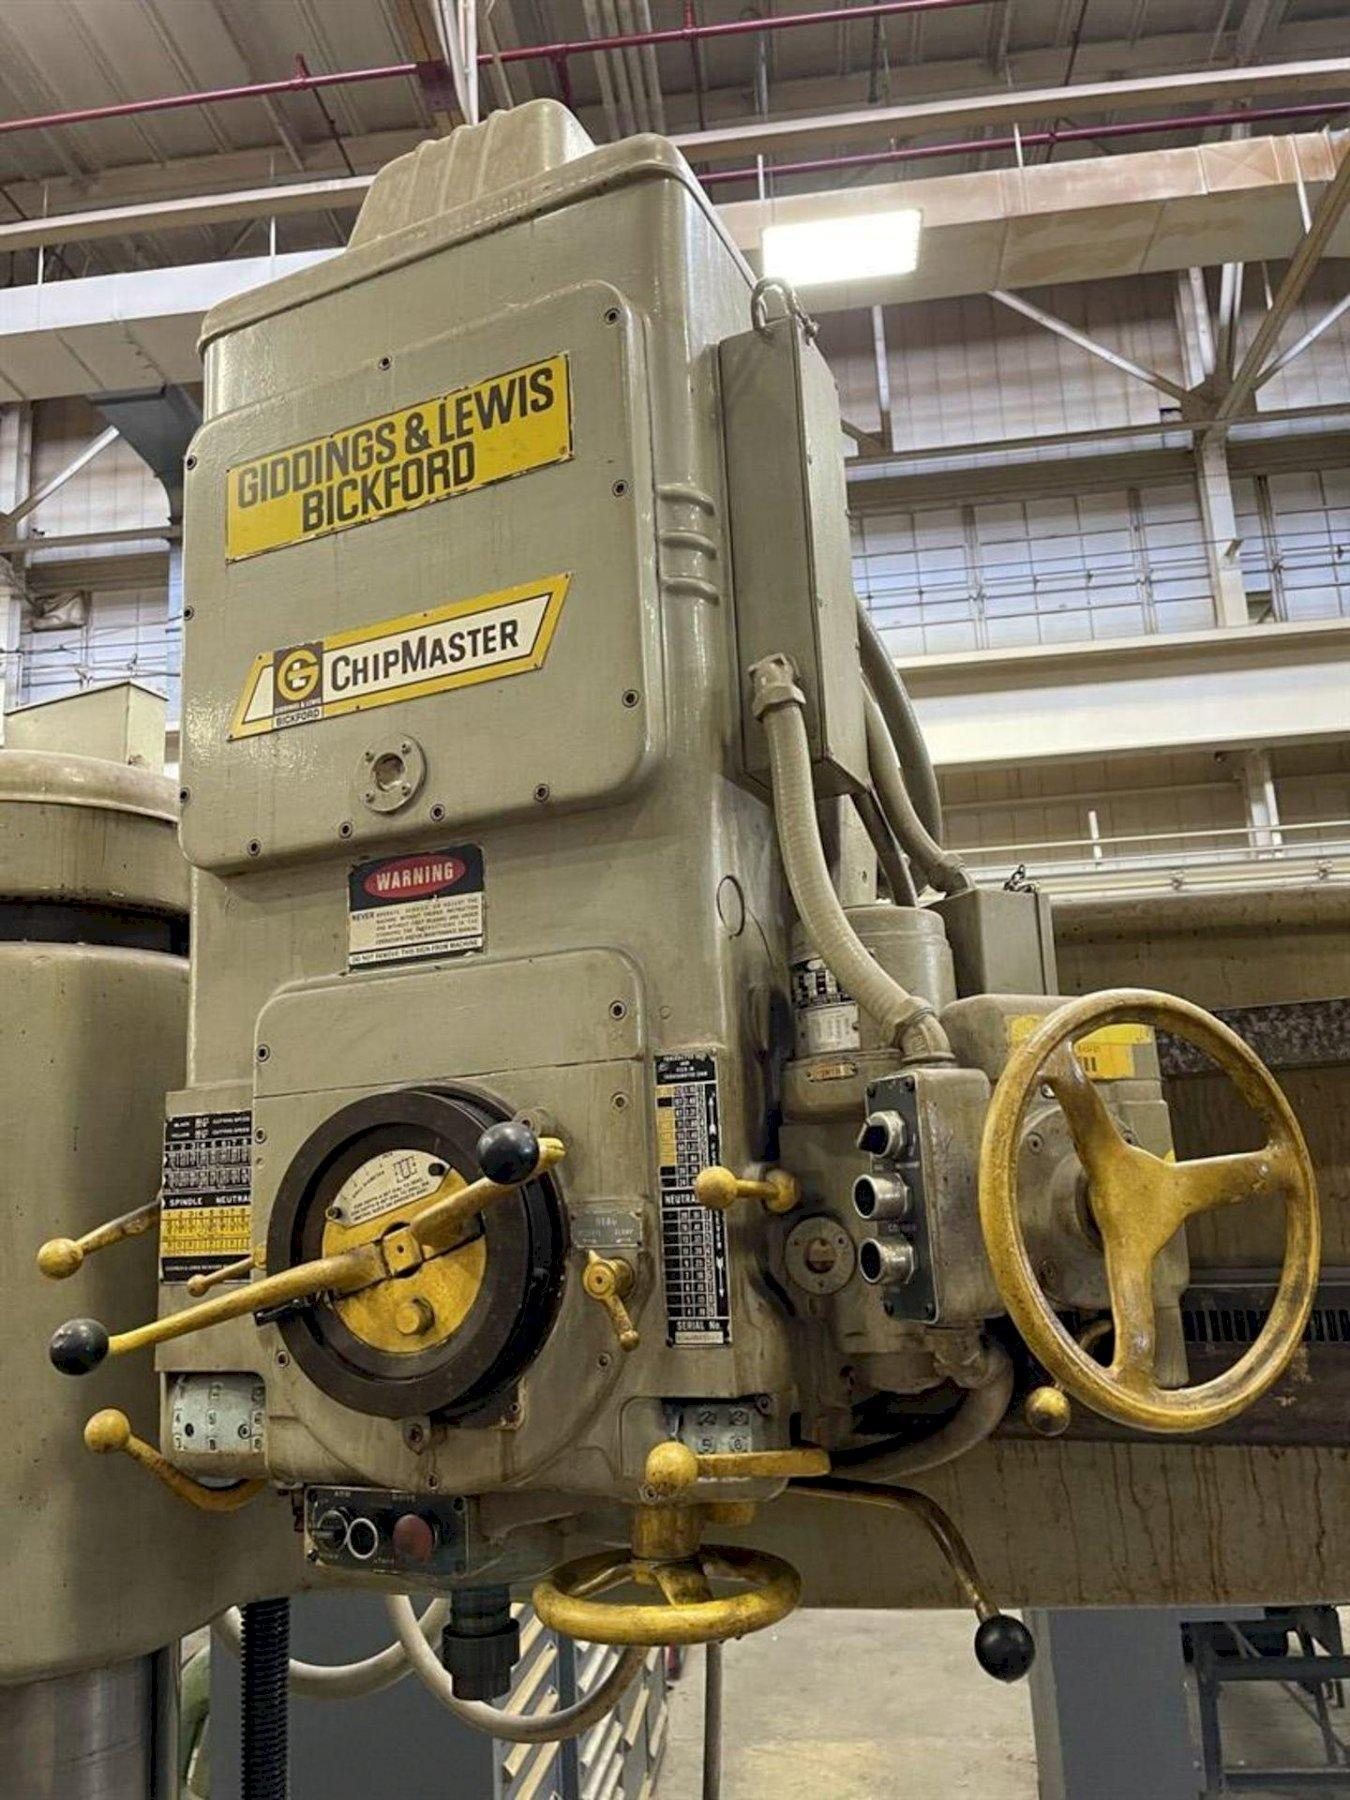 7' GIDDINGS & LEWIS BICKFORD CHIPMASTER RADIAL ARM DRILL. STOCK # 0521021